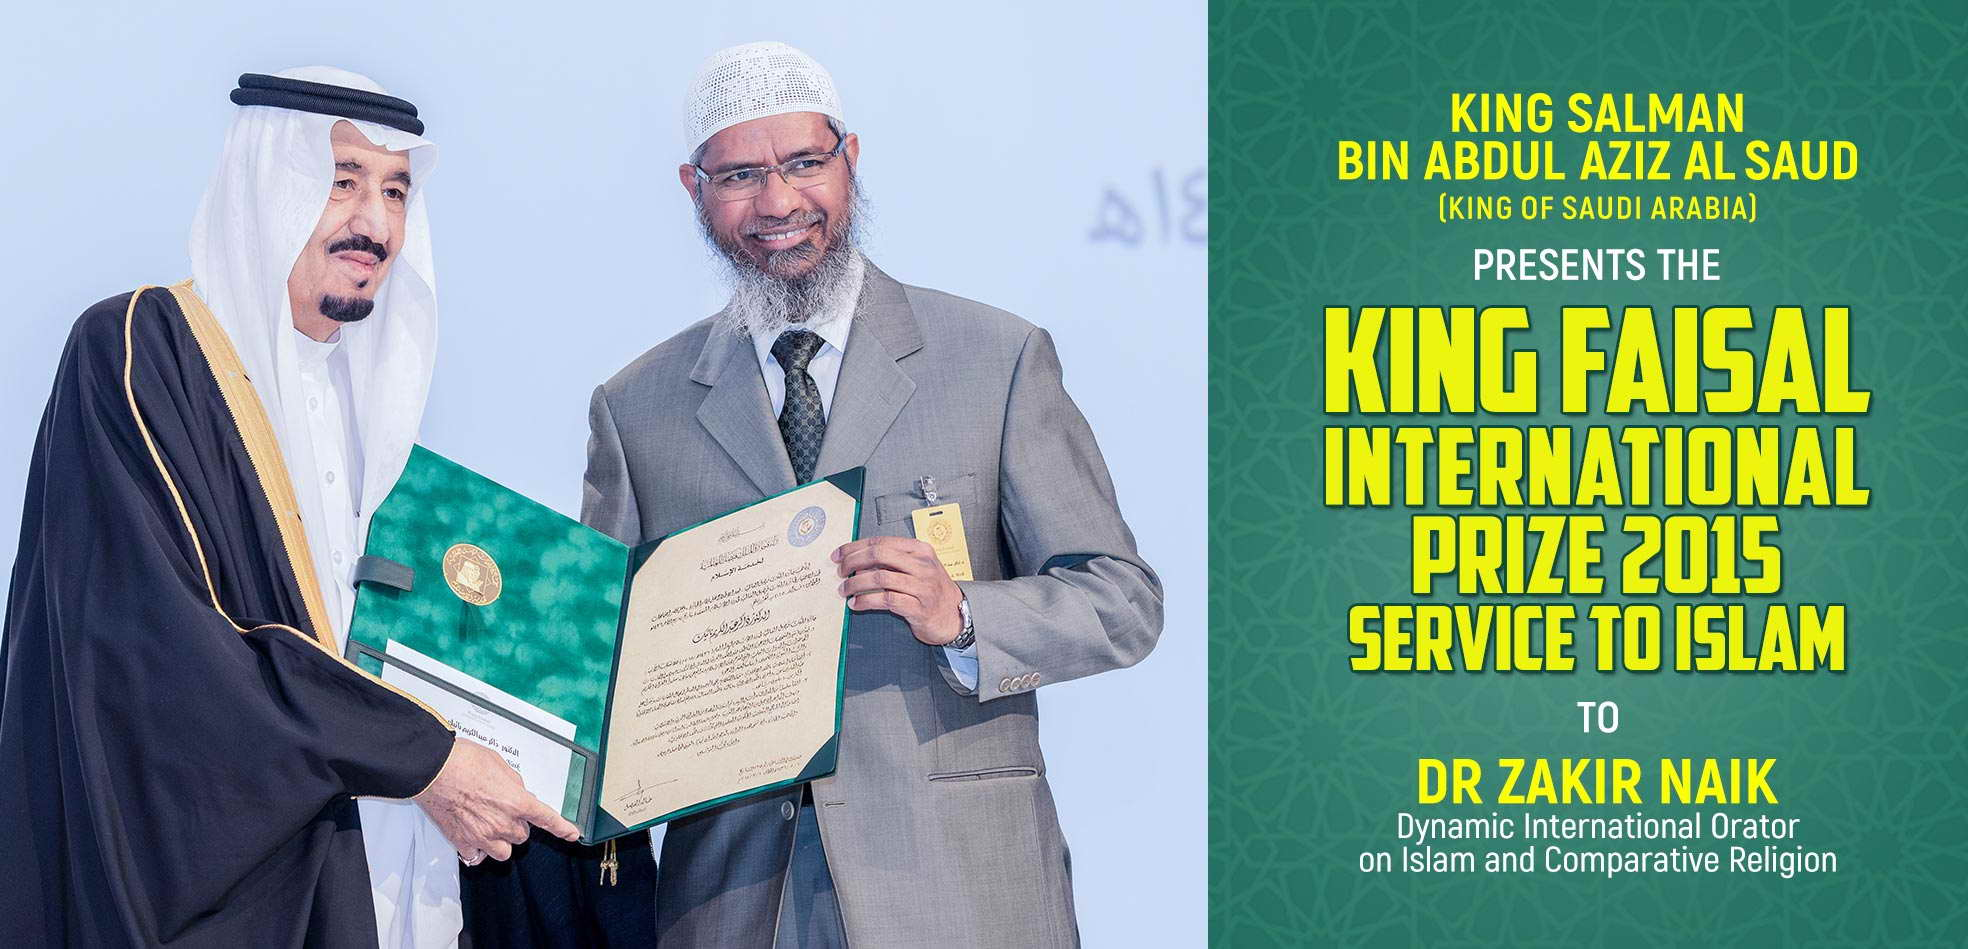 King Faisal International Prize for Service to Islam - 2015